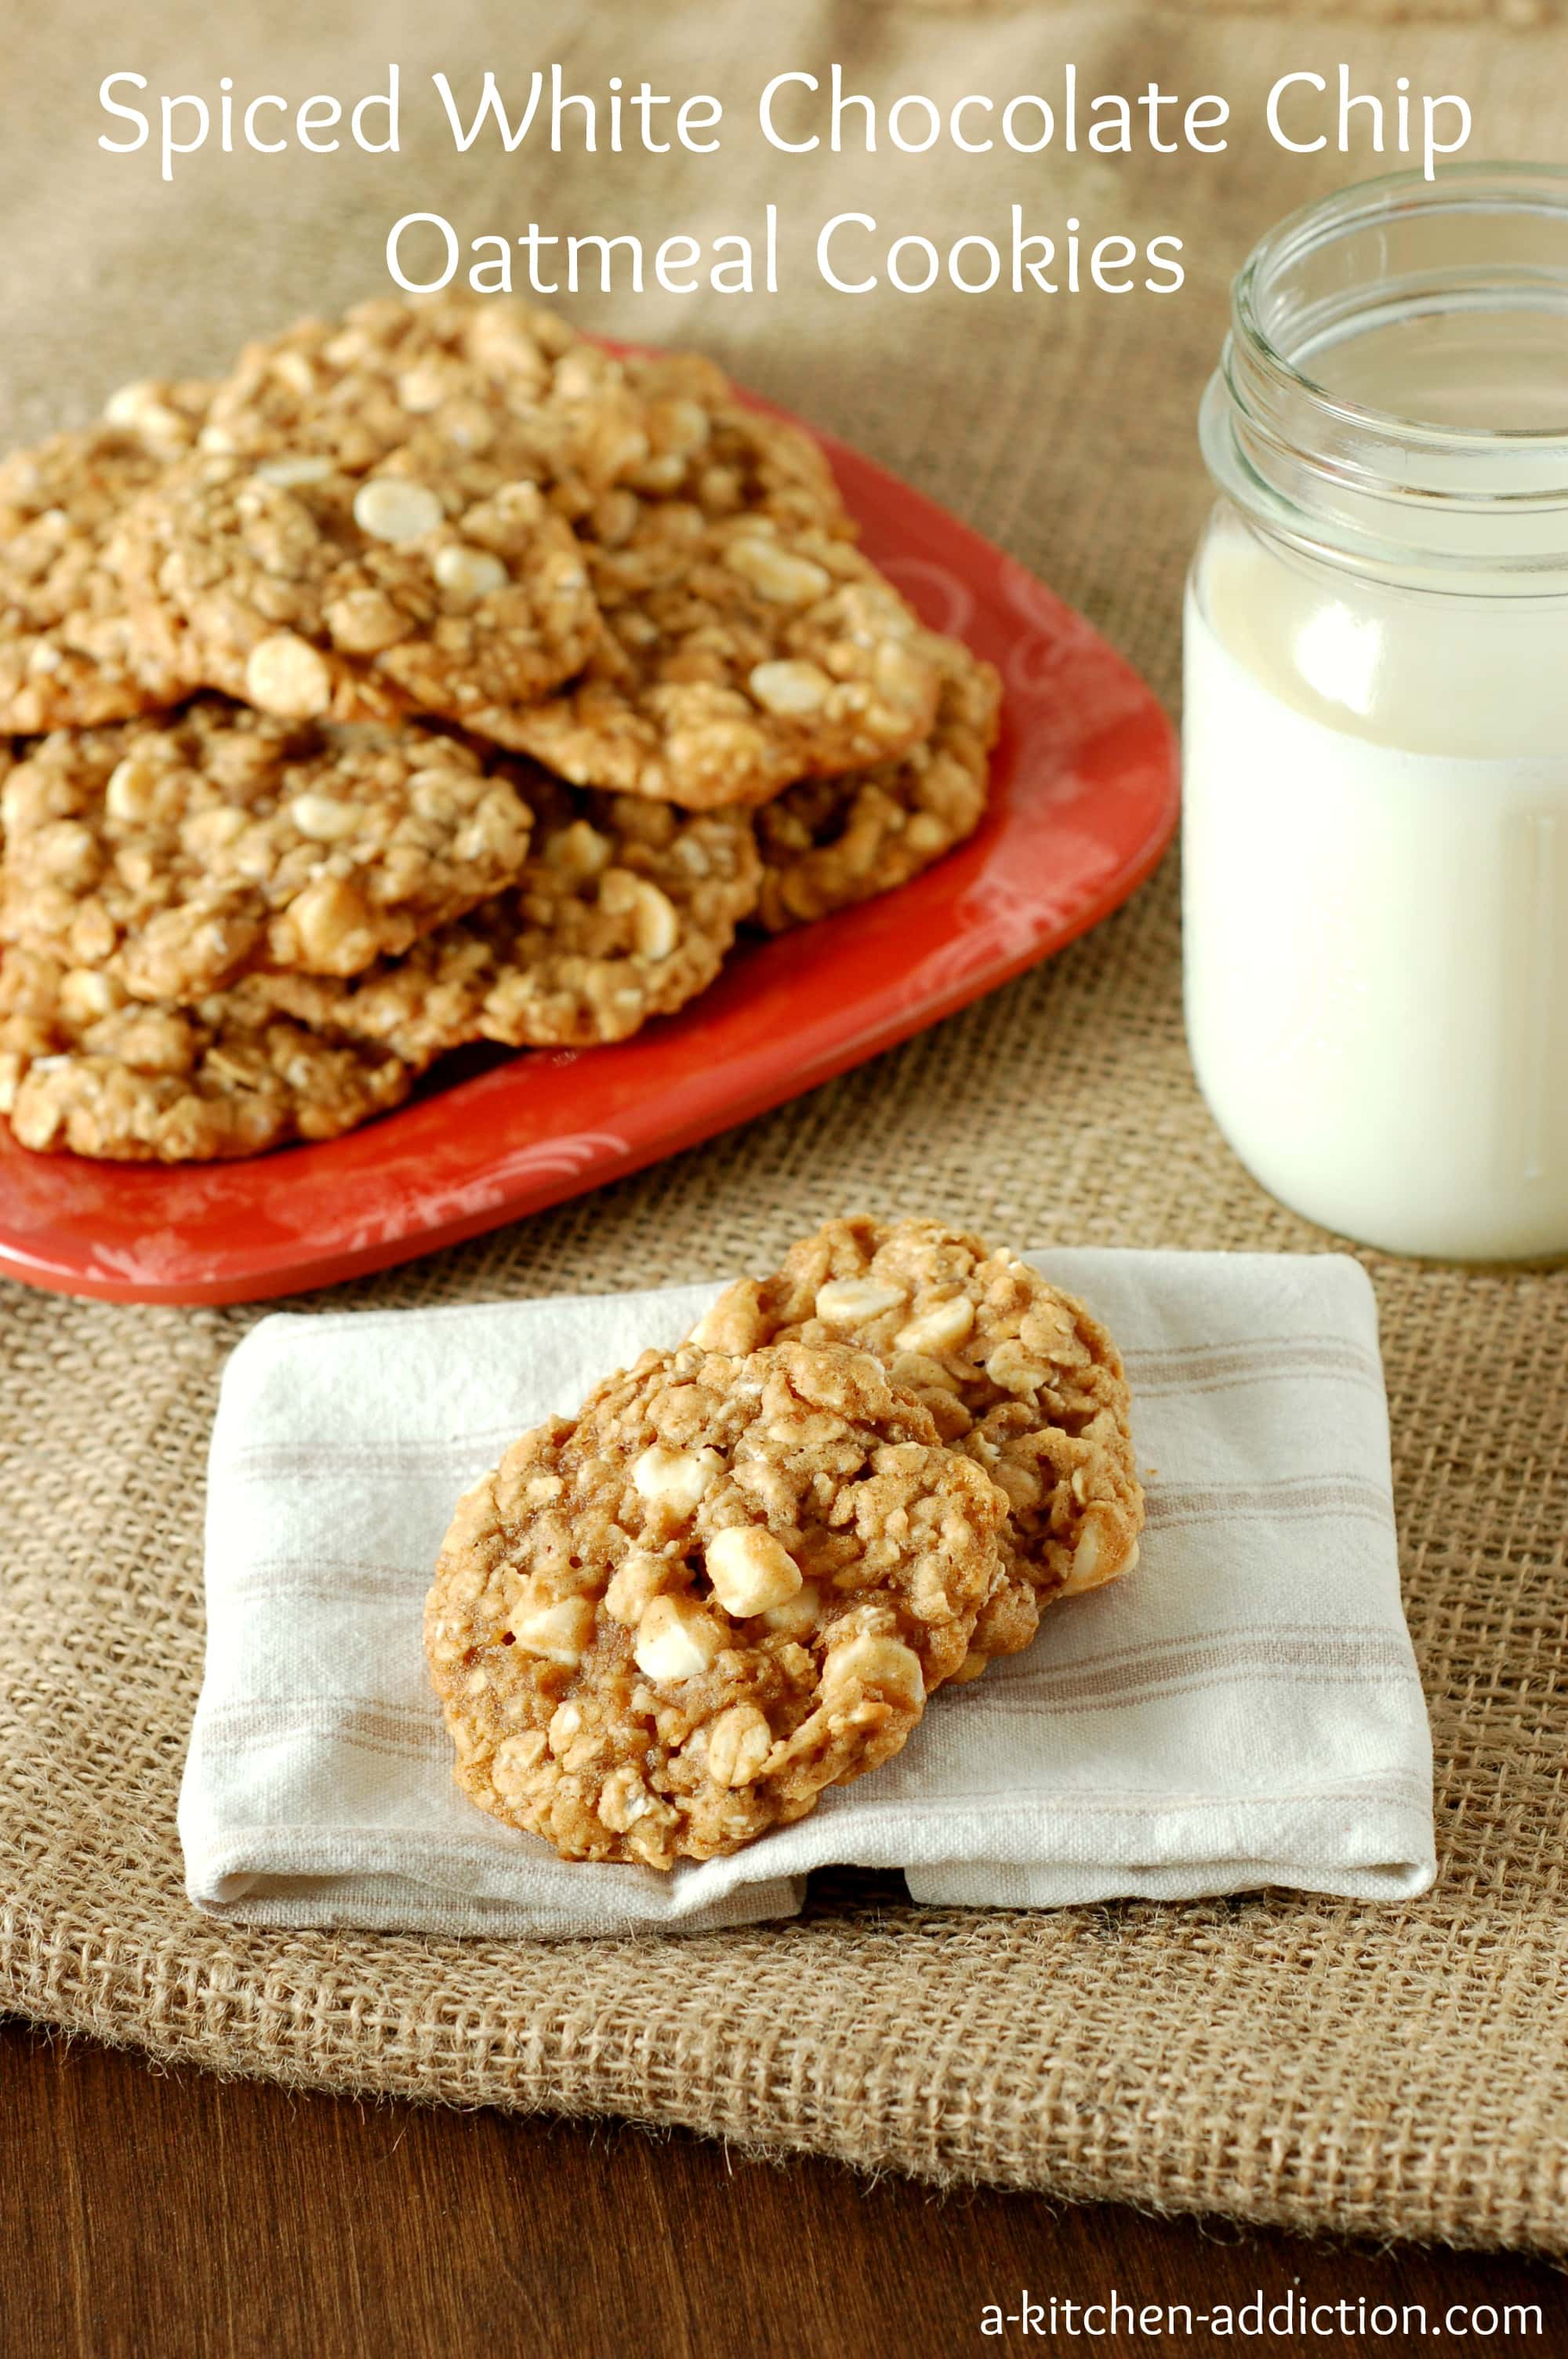 Spiced White Chocolate Chip Oatmeal Cookies from www.a-kitchen ...